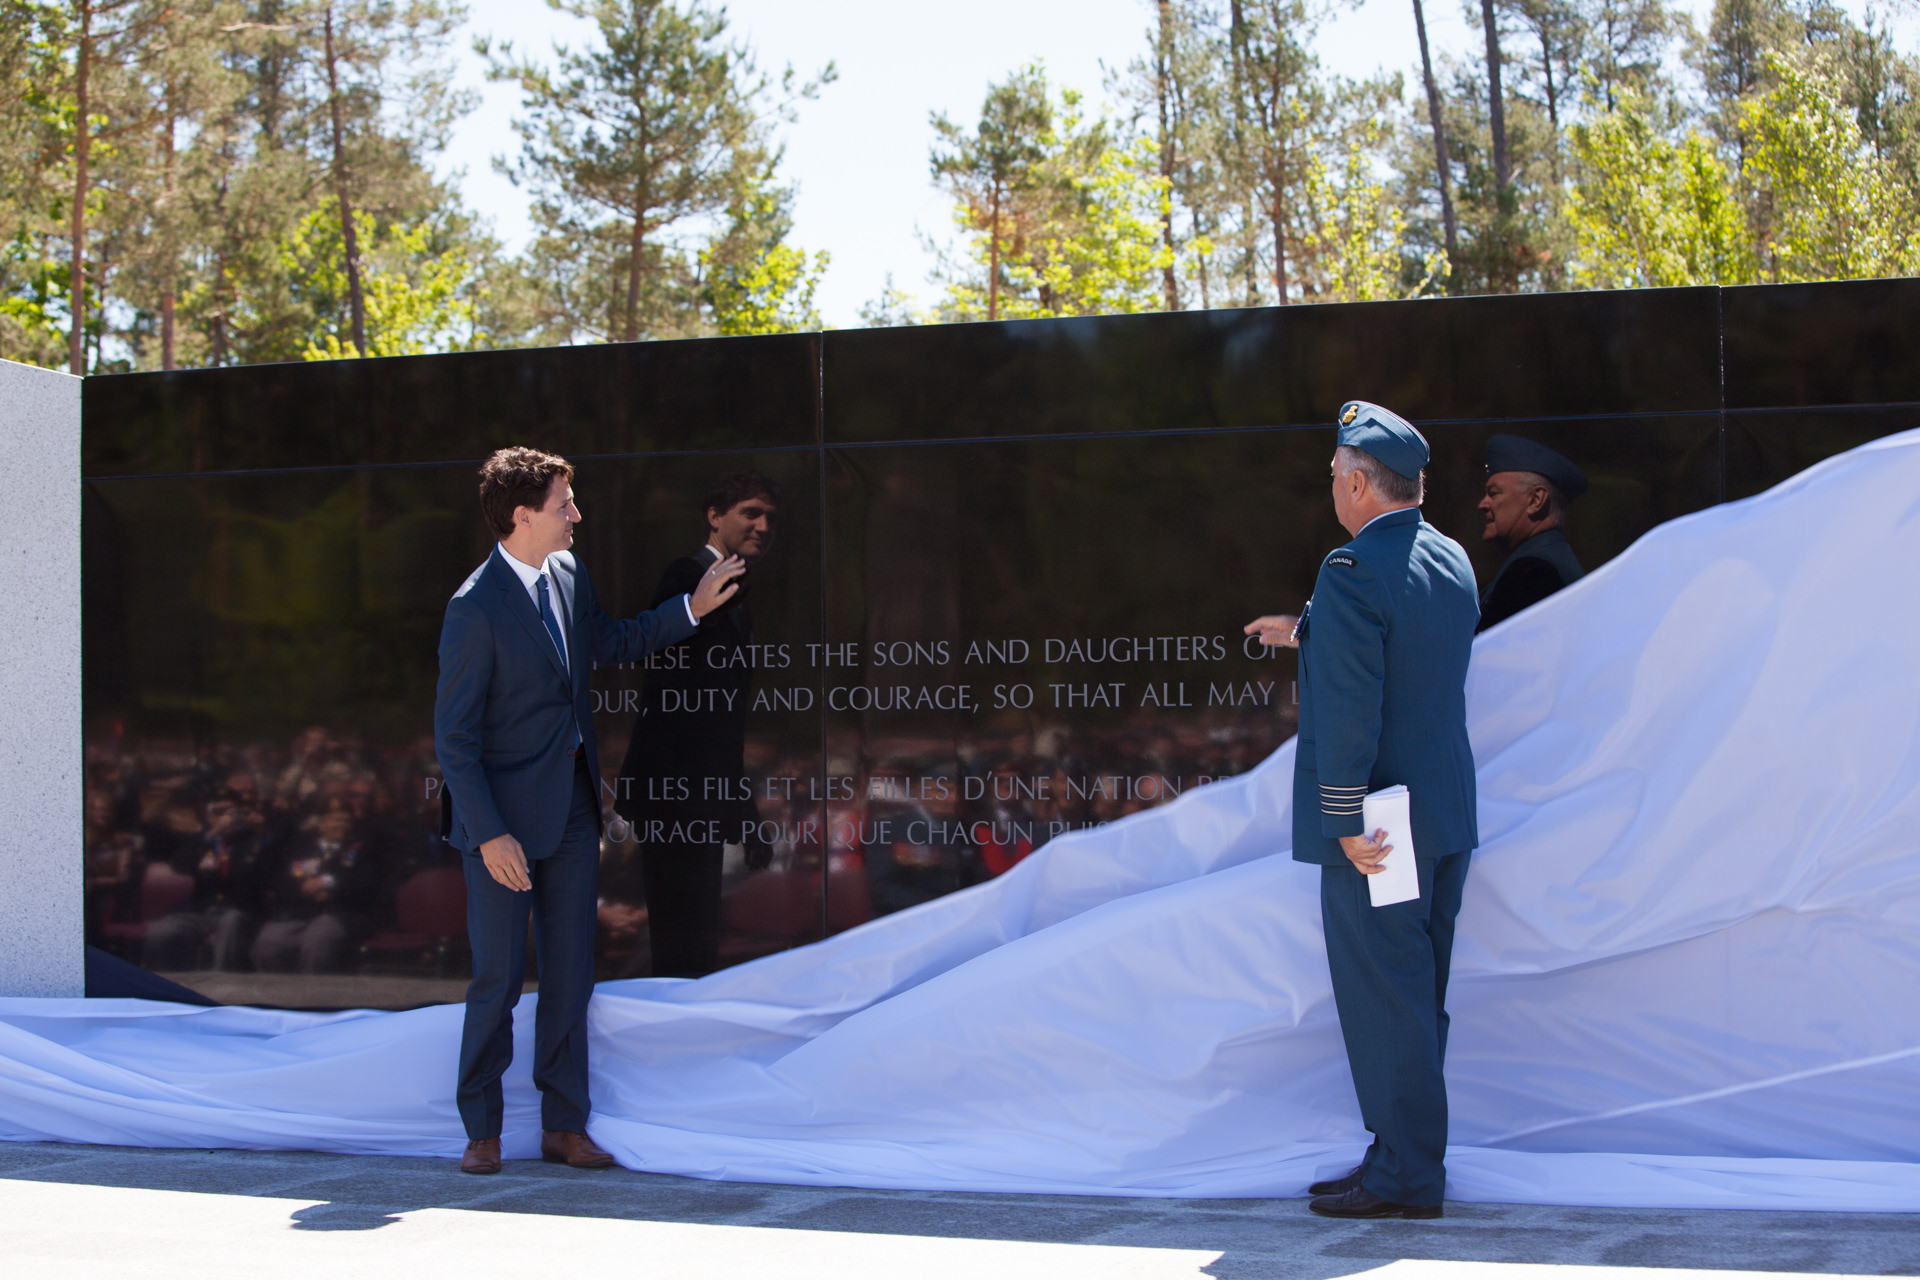 ustin Trudeau, Honorary Colonel Jamie Massie Borden Legacy Monument